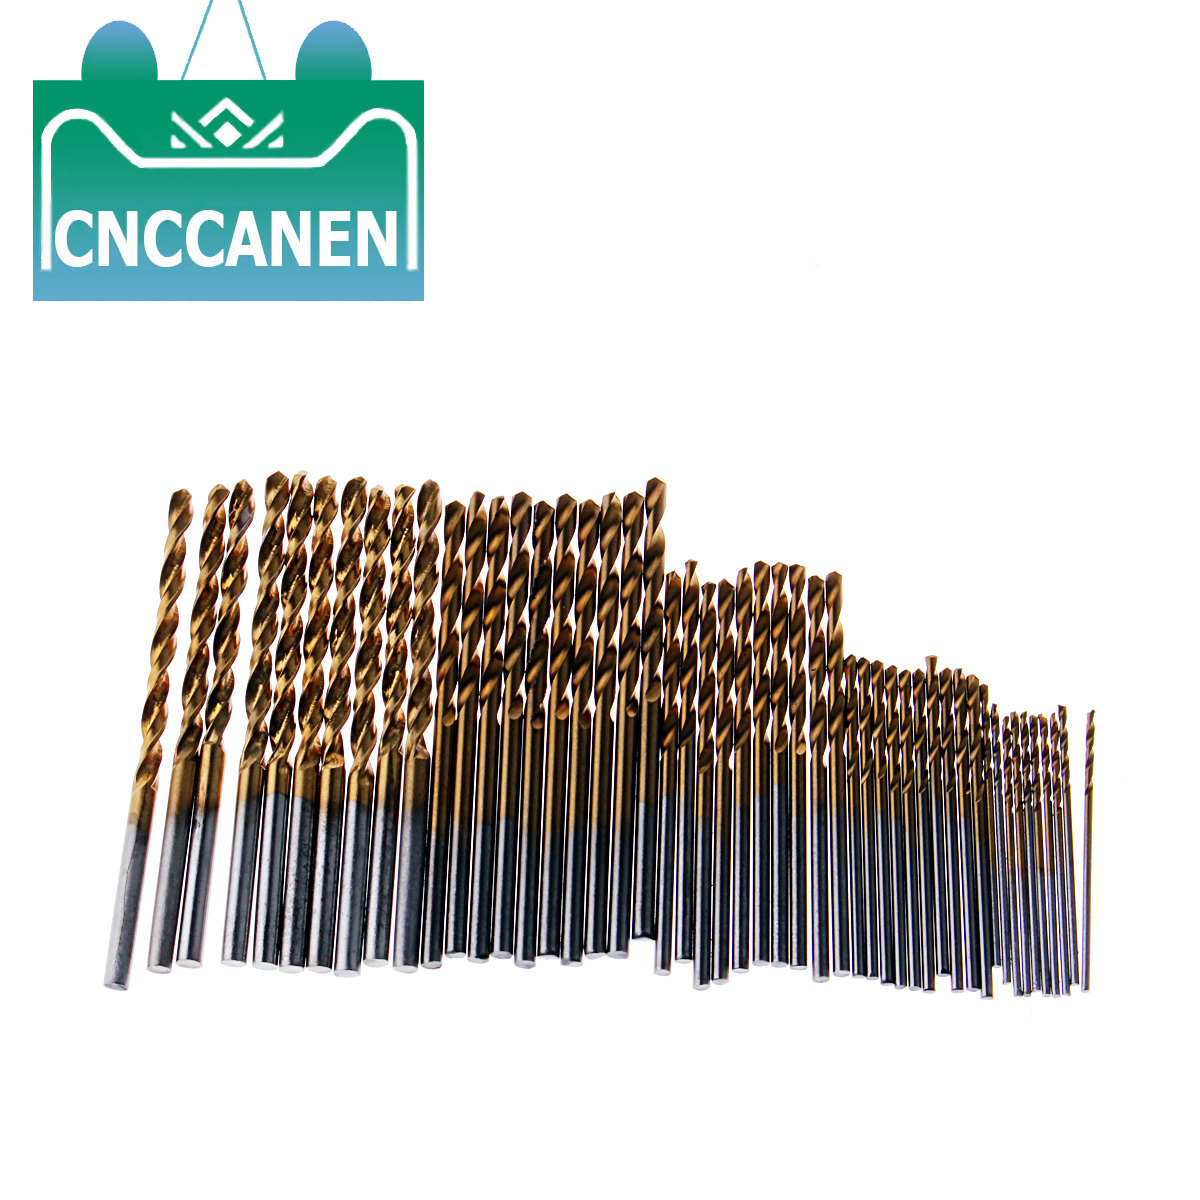 50Pcs 1/1.5/2/2.5/3mm Titanium Coated Twist Drill Bits HSS High Speed Steel Drill Bits For Woodworking Plastic And Aluminum